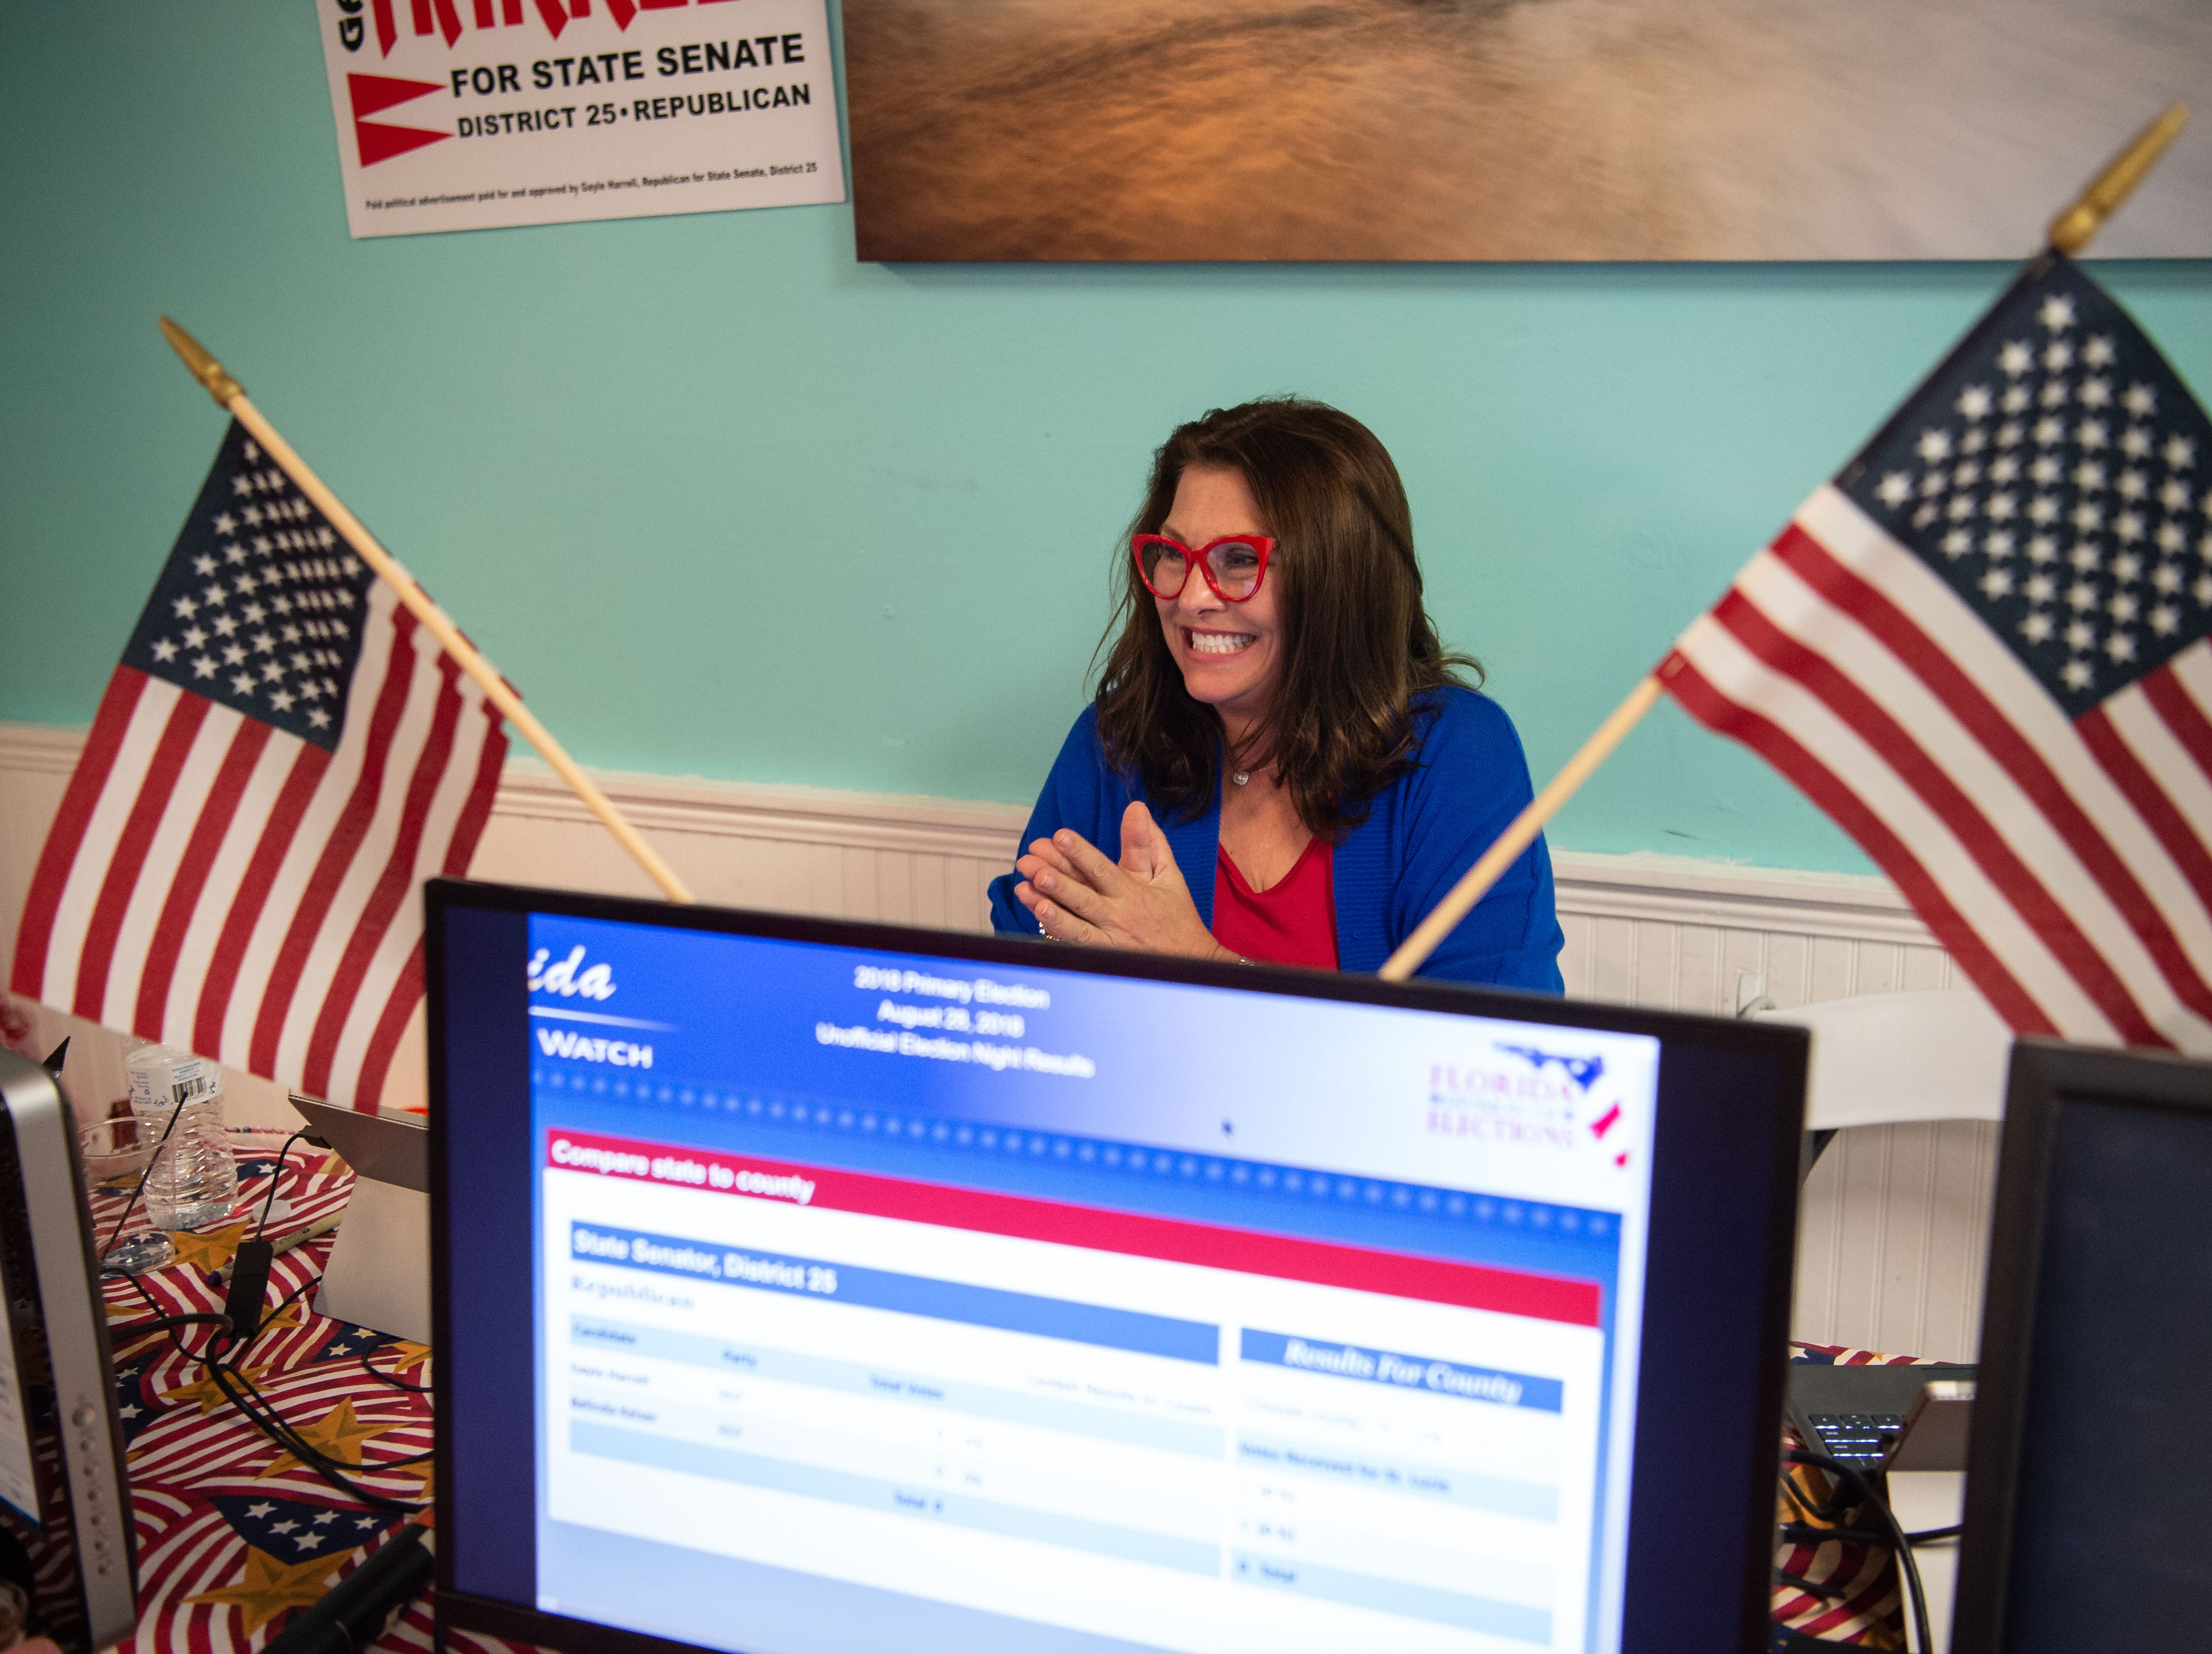 """Victoria Zepp, a child advocate in Tallahassee, a volunteer for State Rep. Gayle Harrell senate campaign, cheers news of Harrell's lead over Belinda Keiser for the Republican nomination on Tuesday, Aug. 28, 2018, at Flagler Place in downtown Stuart. """"Gayle Harrell has chaired Children and Families in the House...without her, we wouldn't have half the protections on our children,"""" Zepp said."""